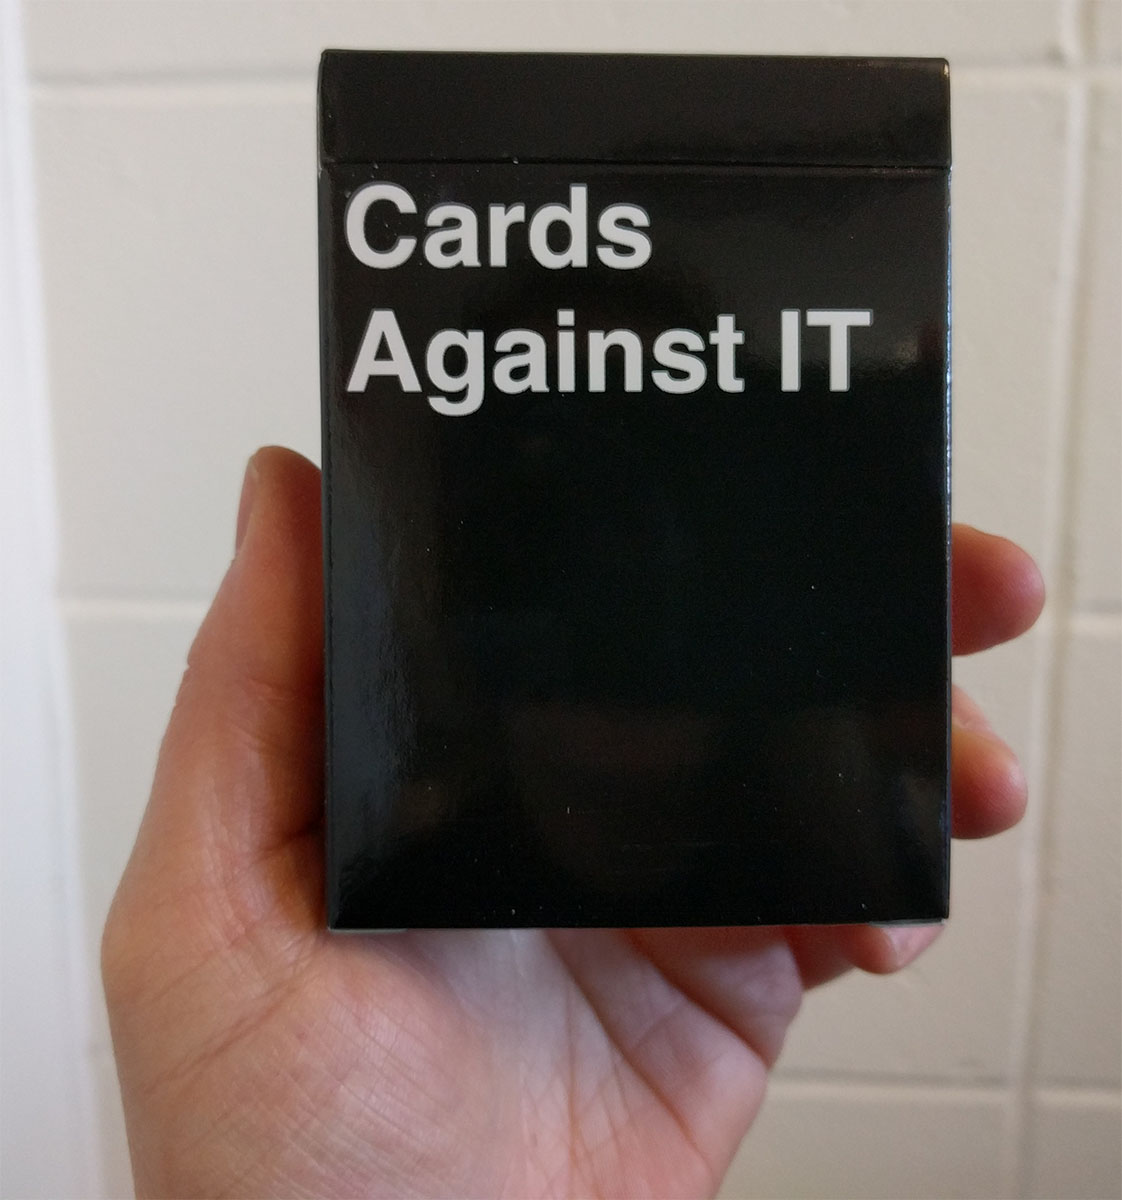 Cards Against IT game